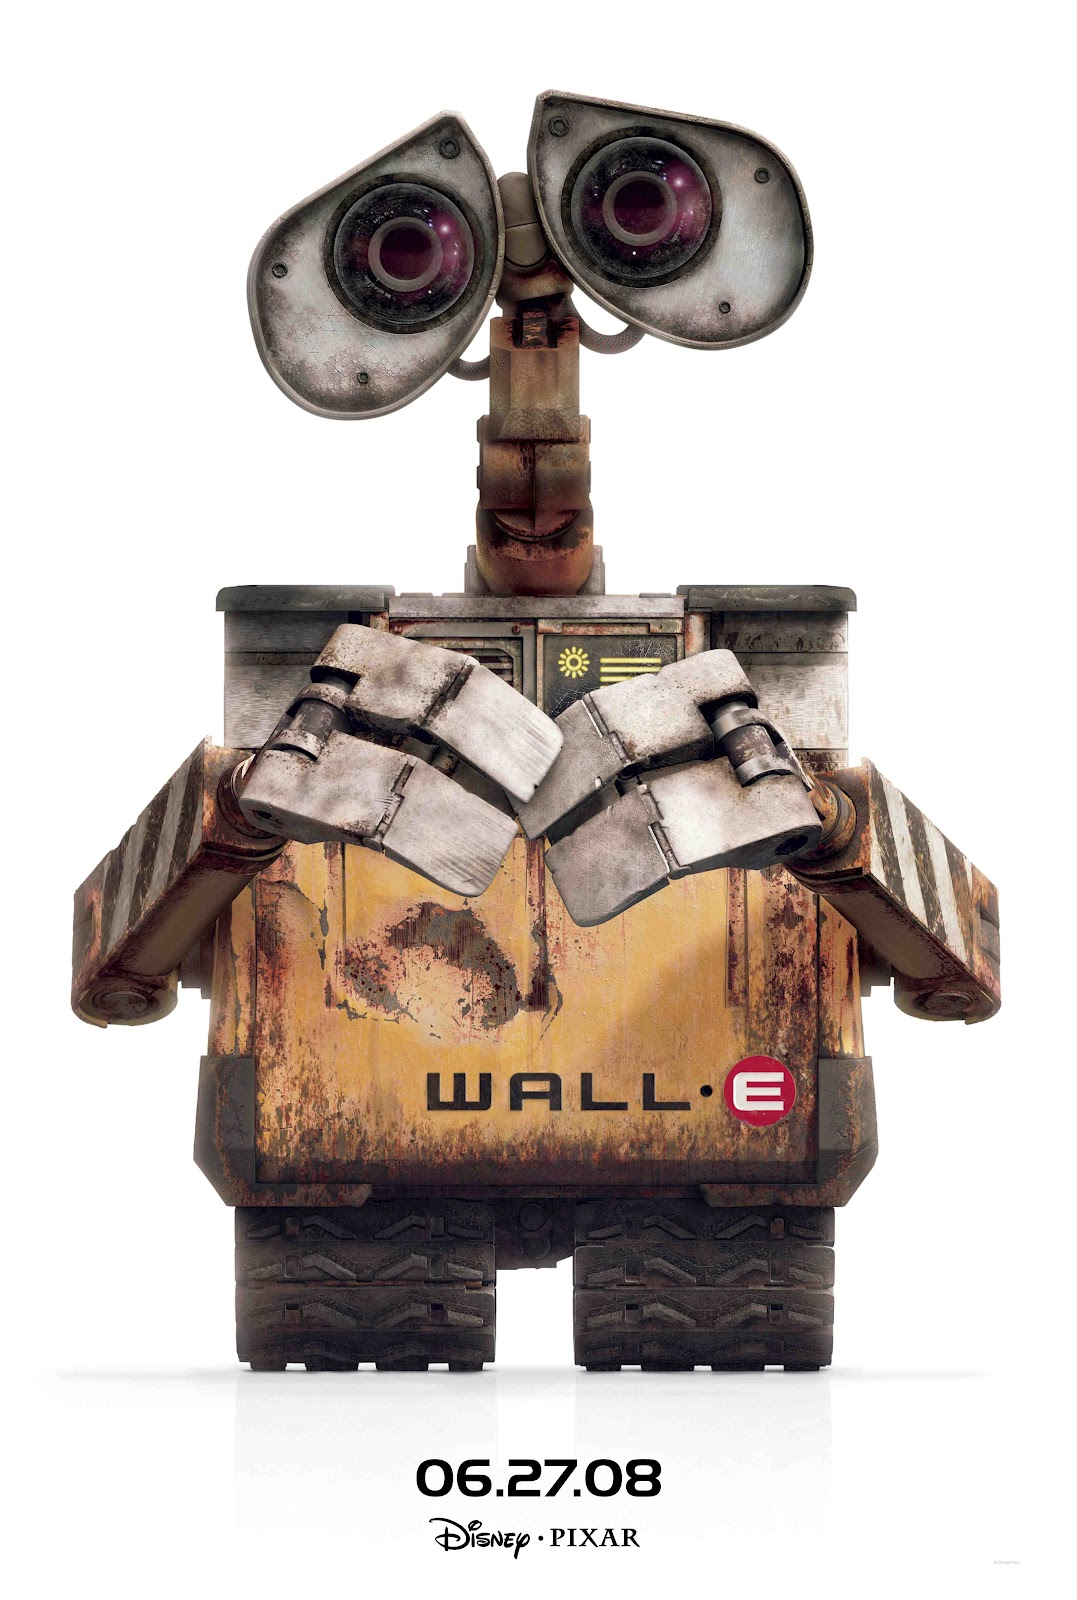 Entirely Emily Wall E Party